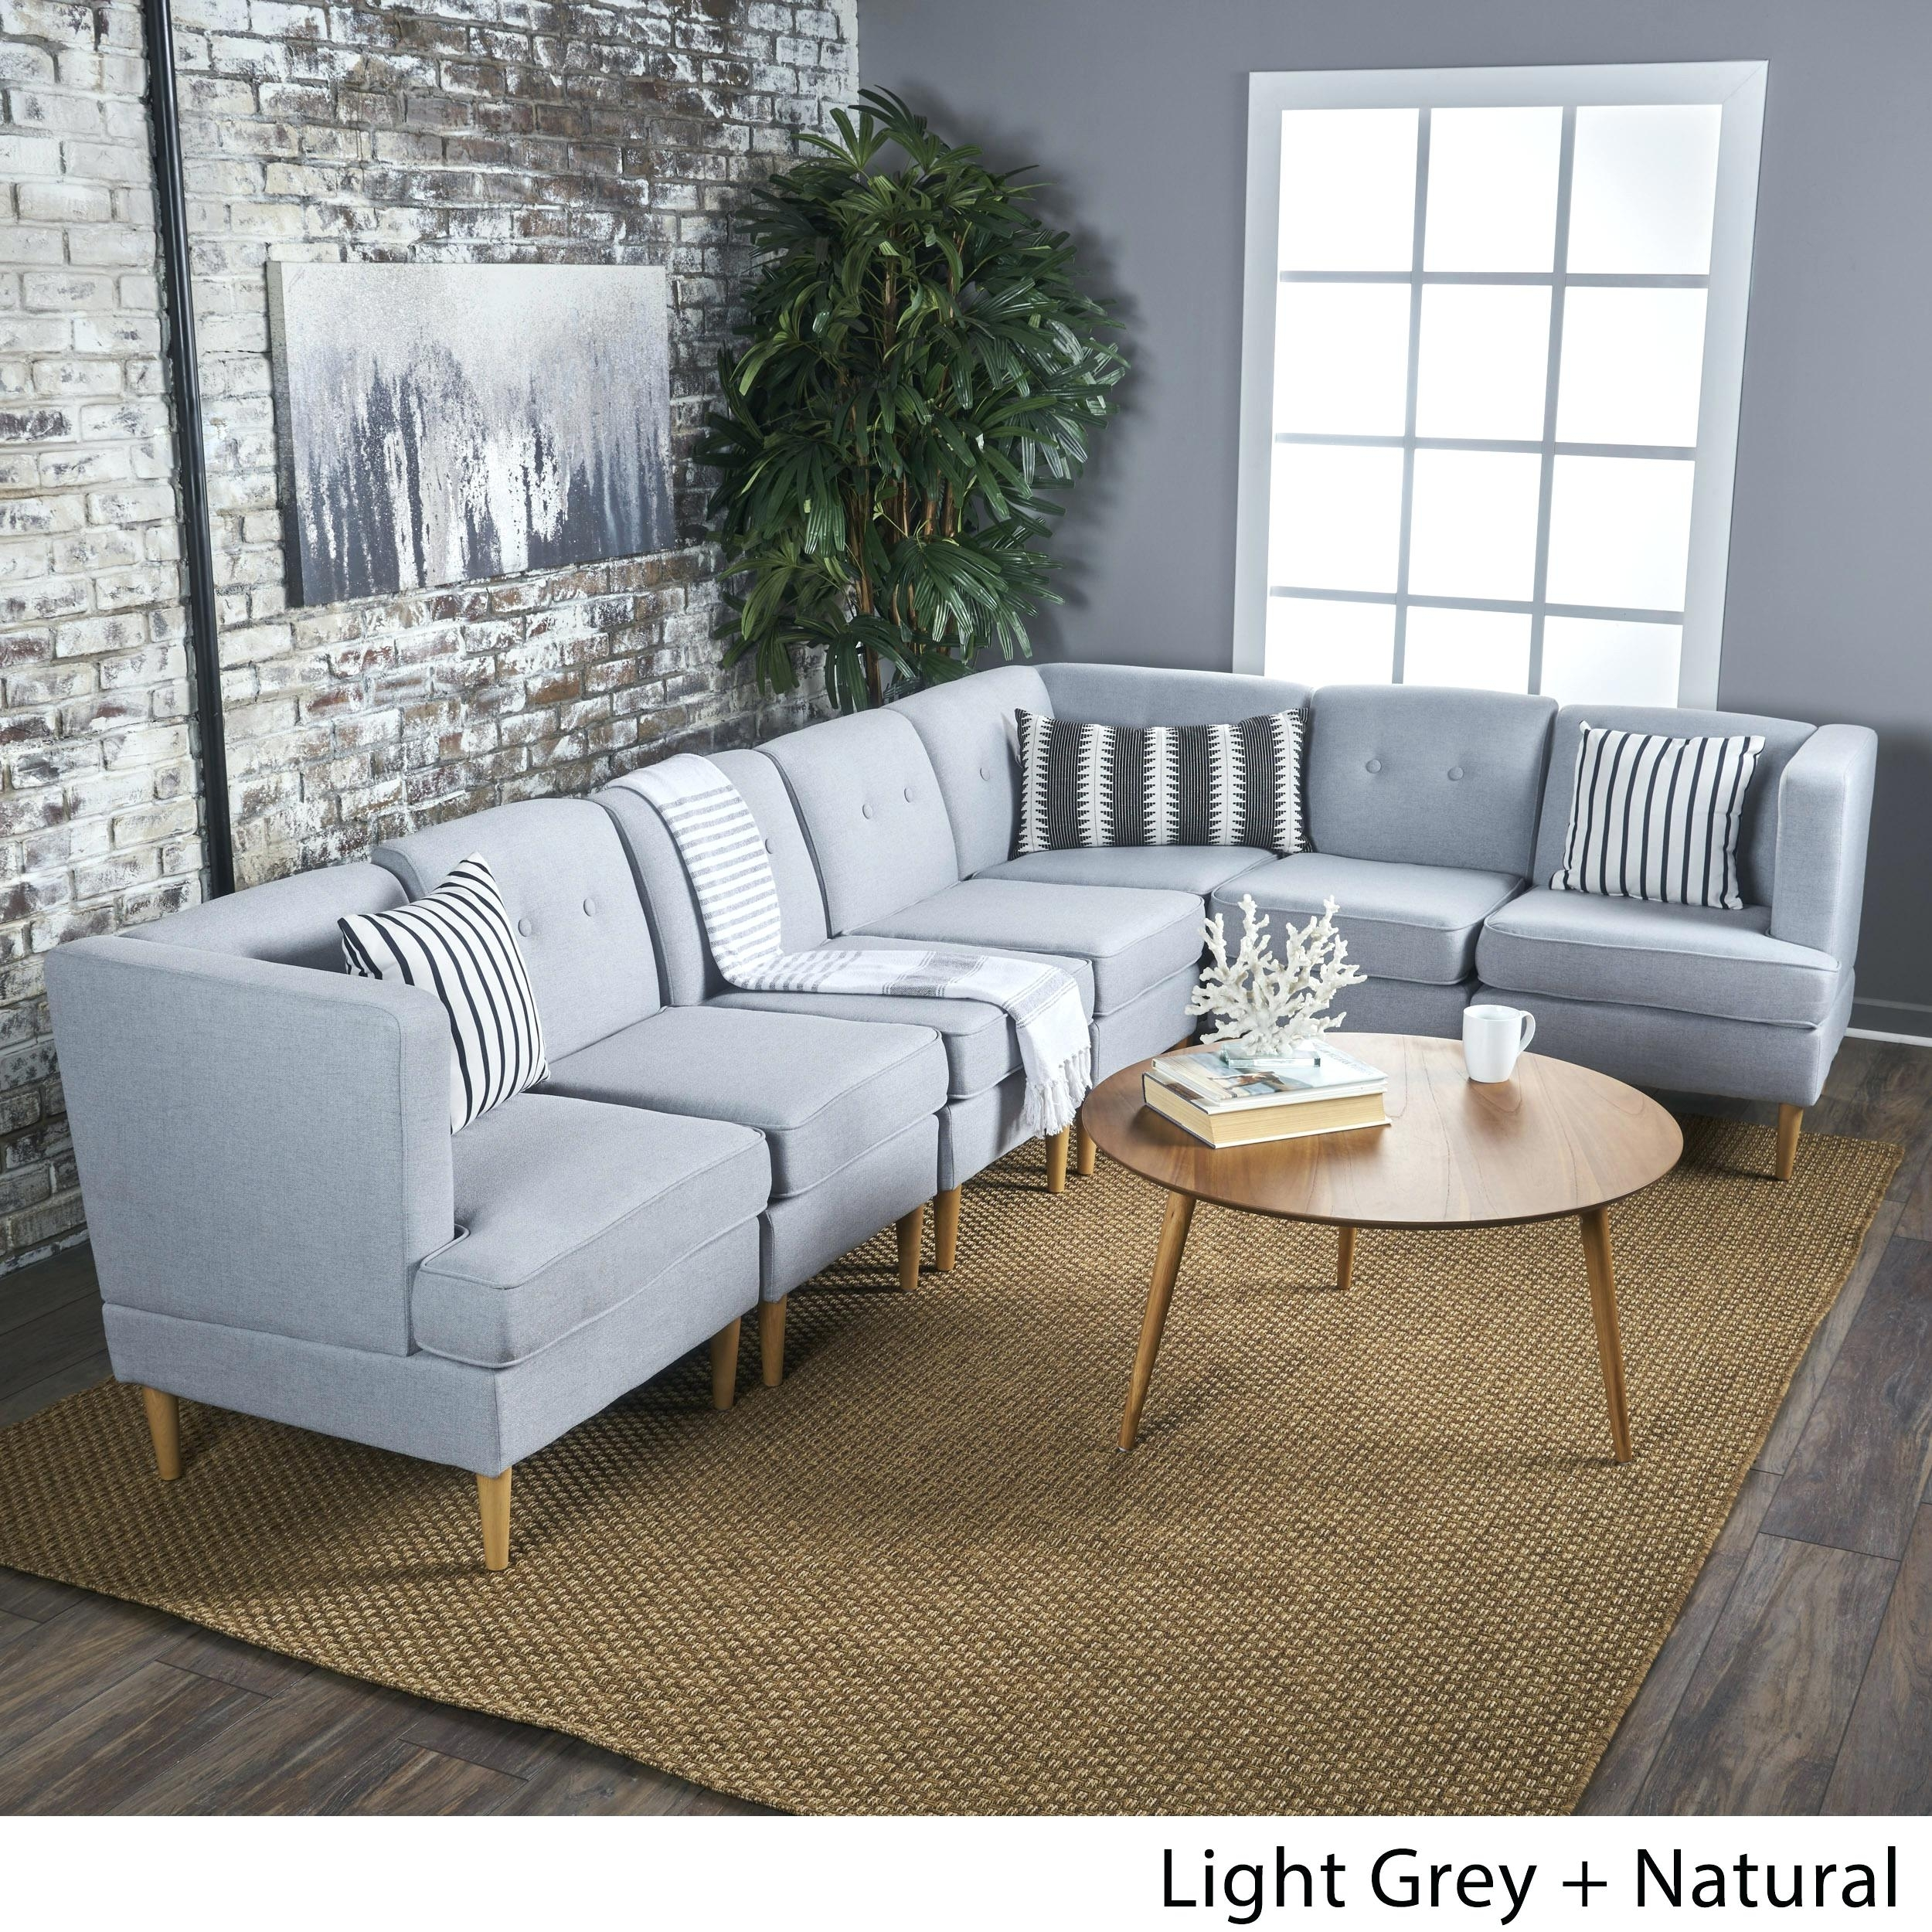 10 choices of sams club sectional sofas sofa ideas - Cheap living room furniture online ...